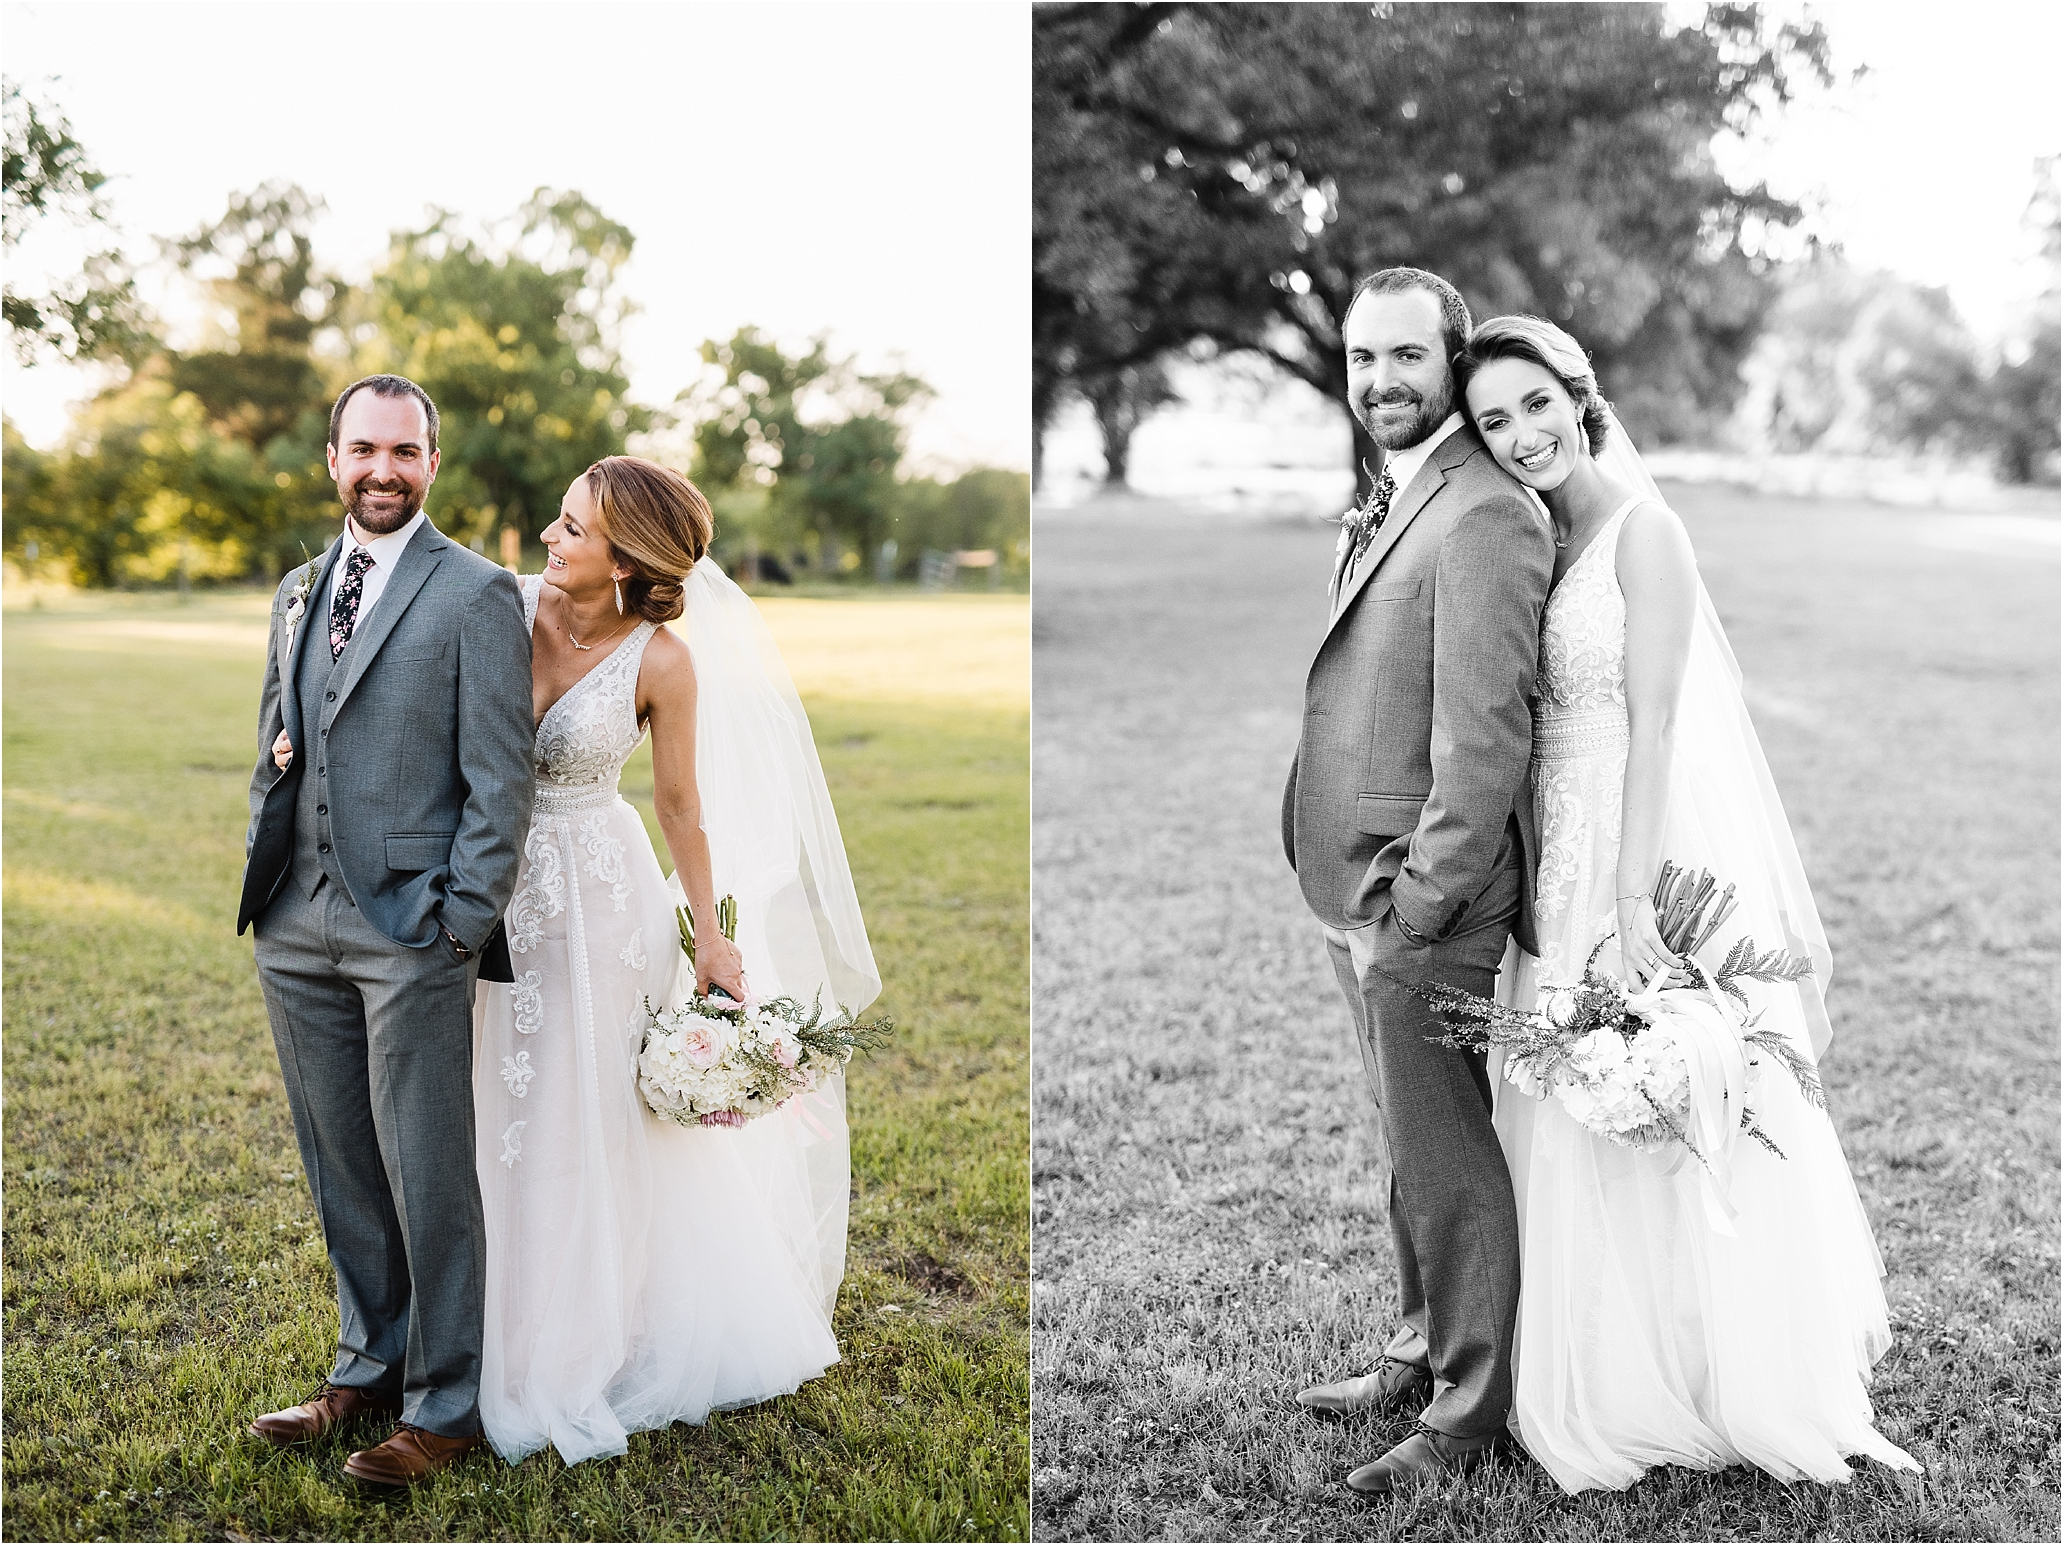 PattisonHouse_TexasWeddingPhotographer_CarlyCrockett&MattBrownWedding_0069.jpg